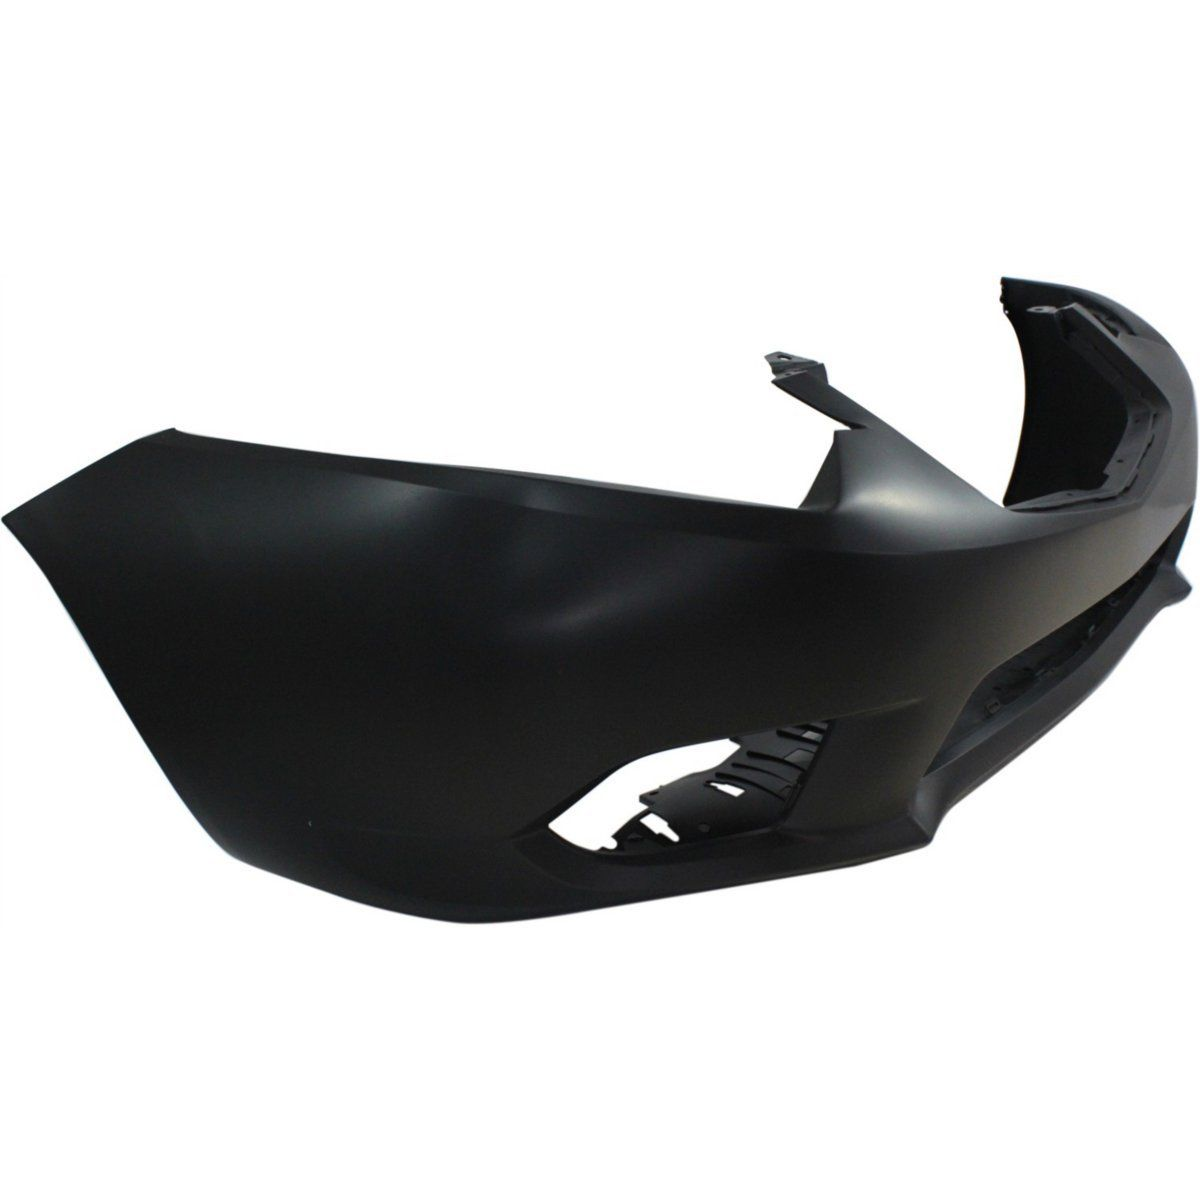 Front Bumper Cover For 2011-2013 Acura TSX Sedan/Wagon